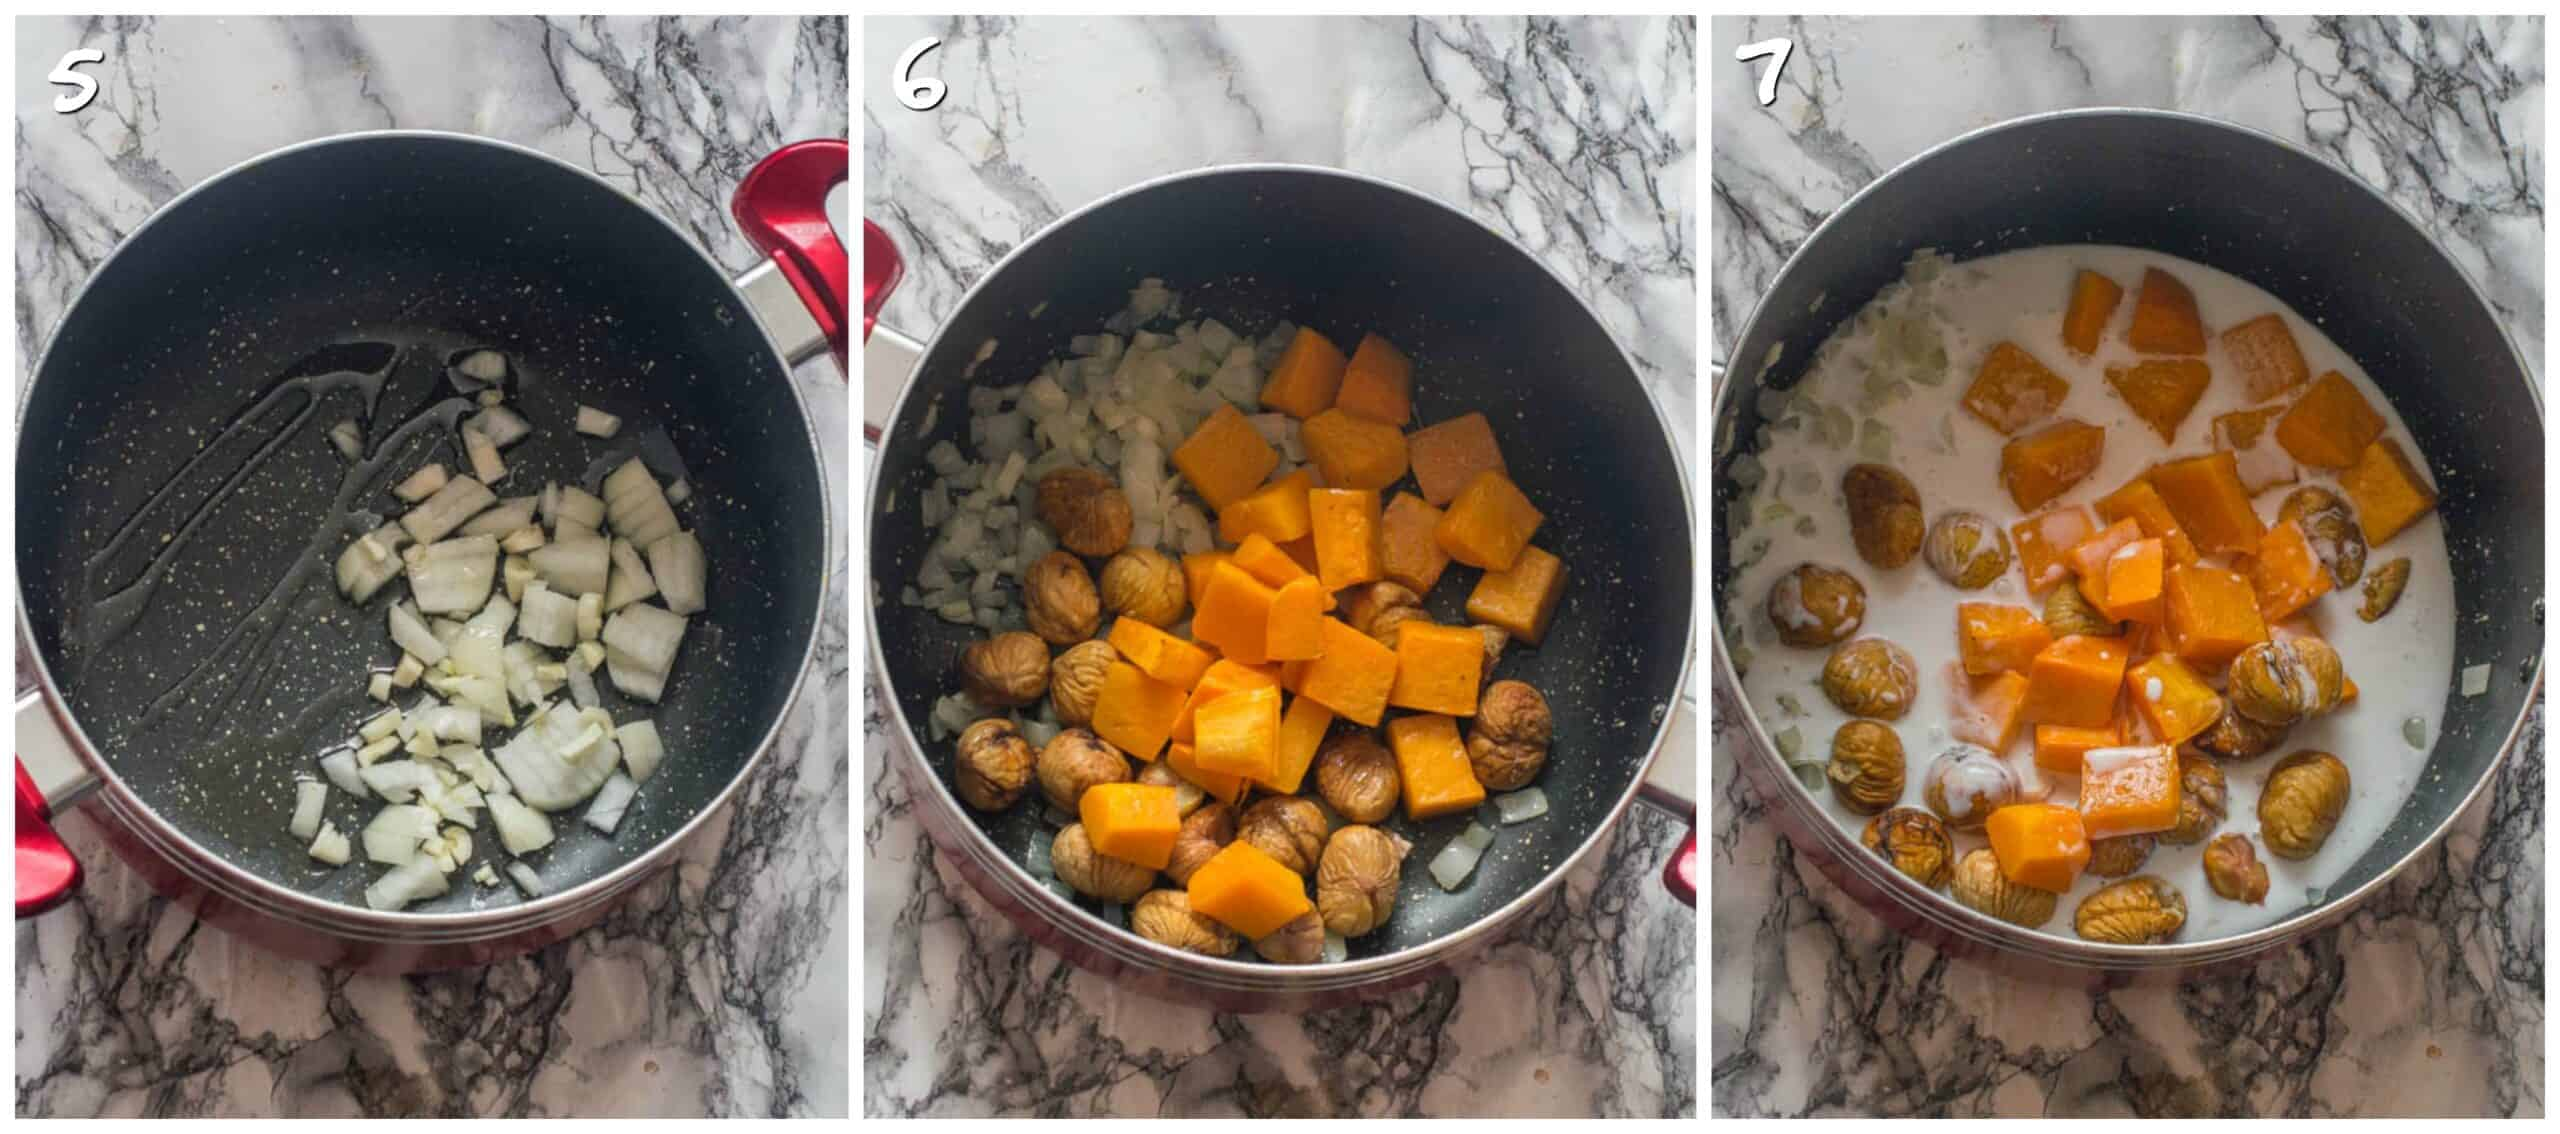 steps 5-7 sauteeing pumpkin and chestnuts